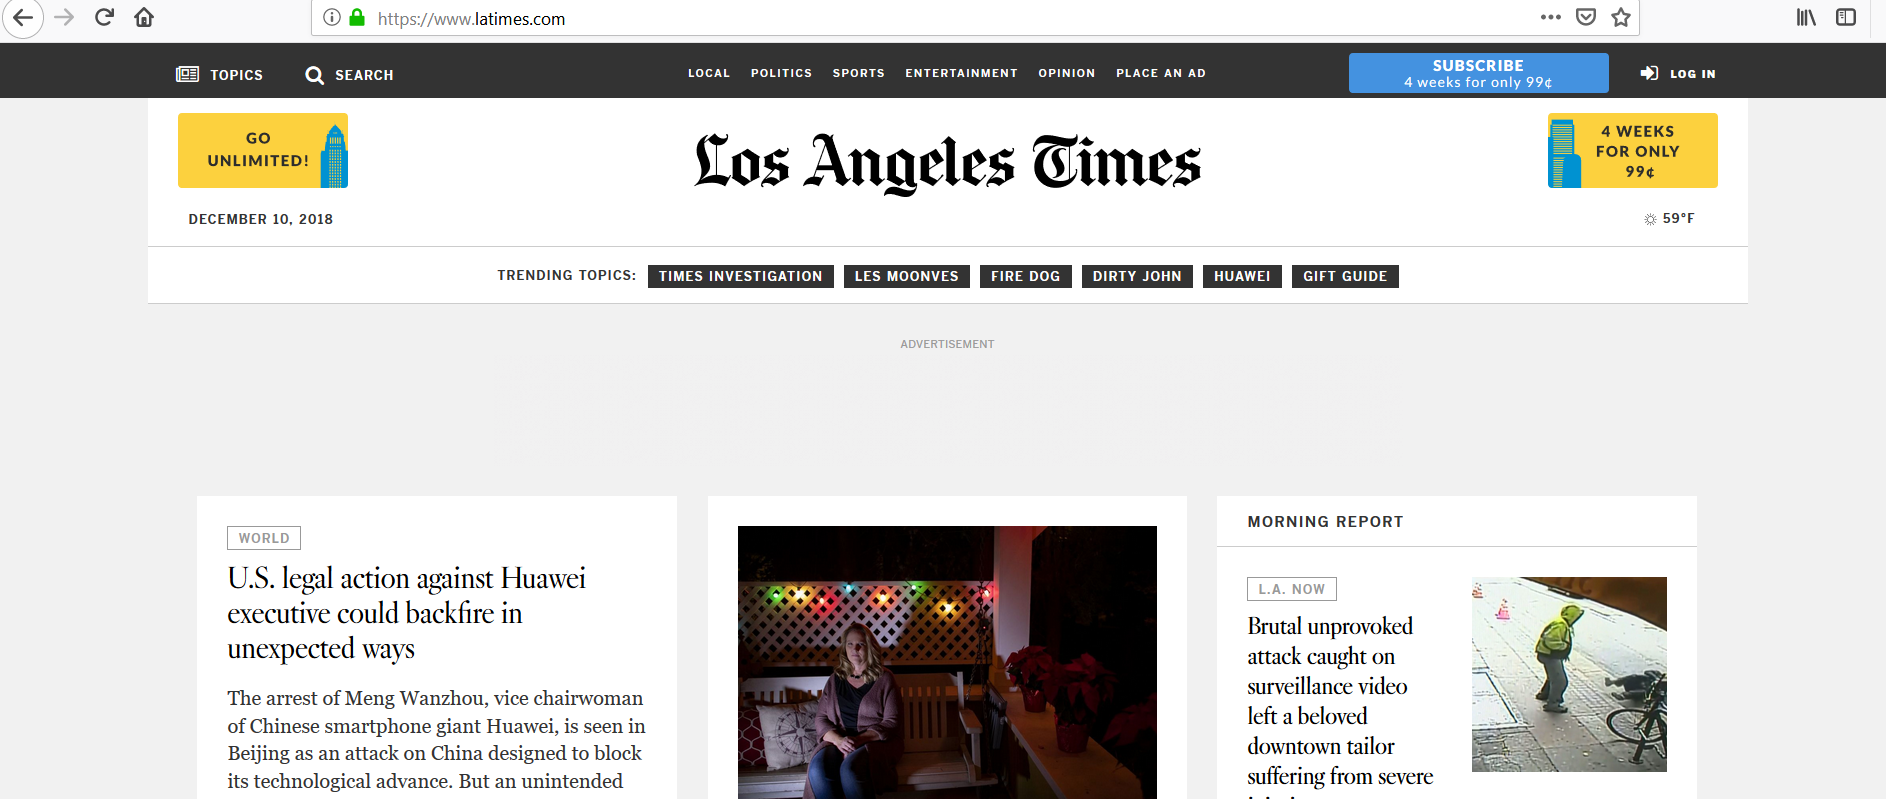 guest post on Los Angeles Times Latimes Latimes. com DA94